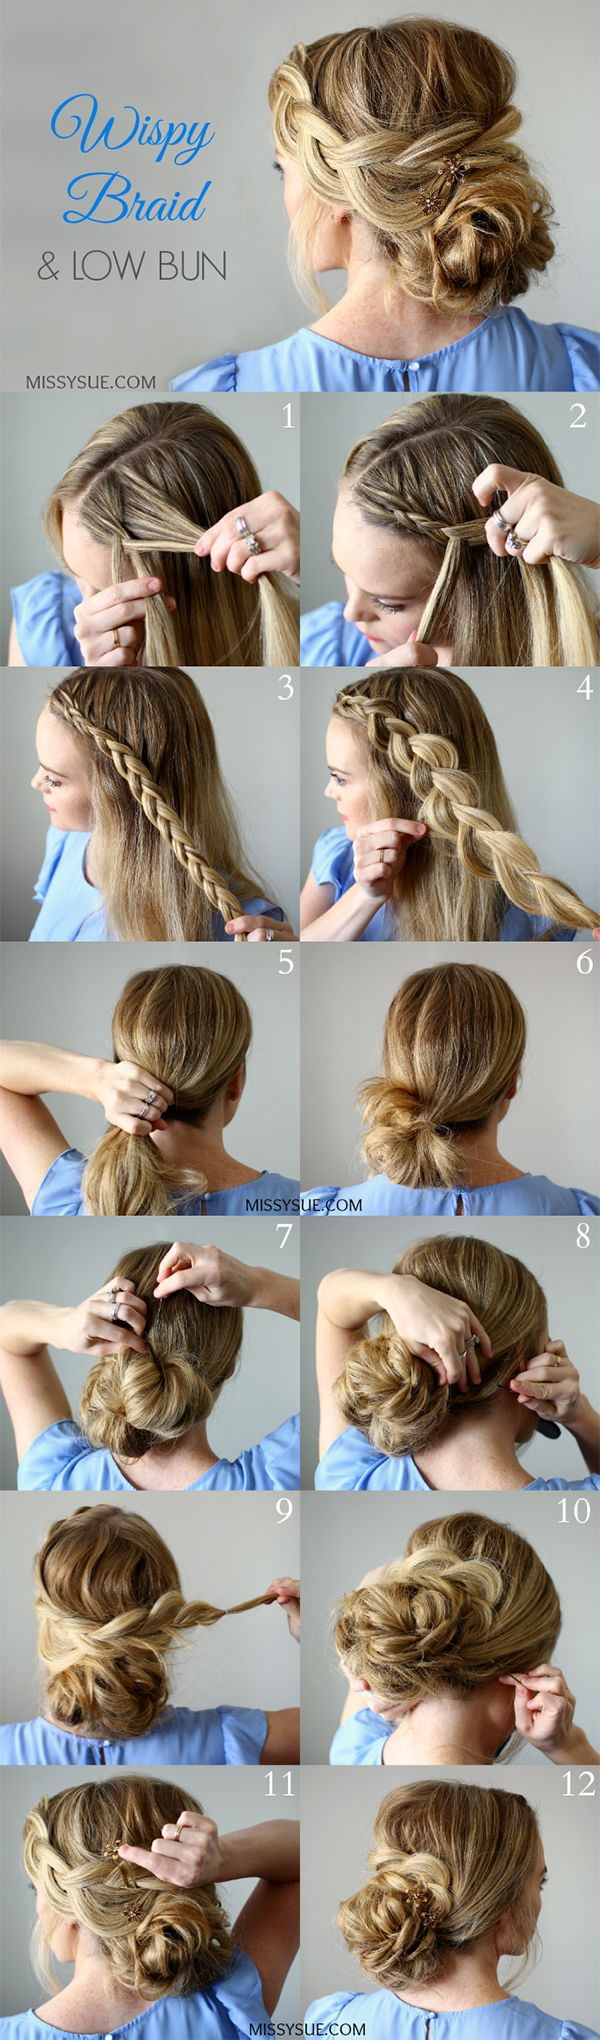 best 25+ prom hairstyles ideas on pinterest | hair styles for prom